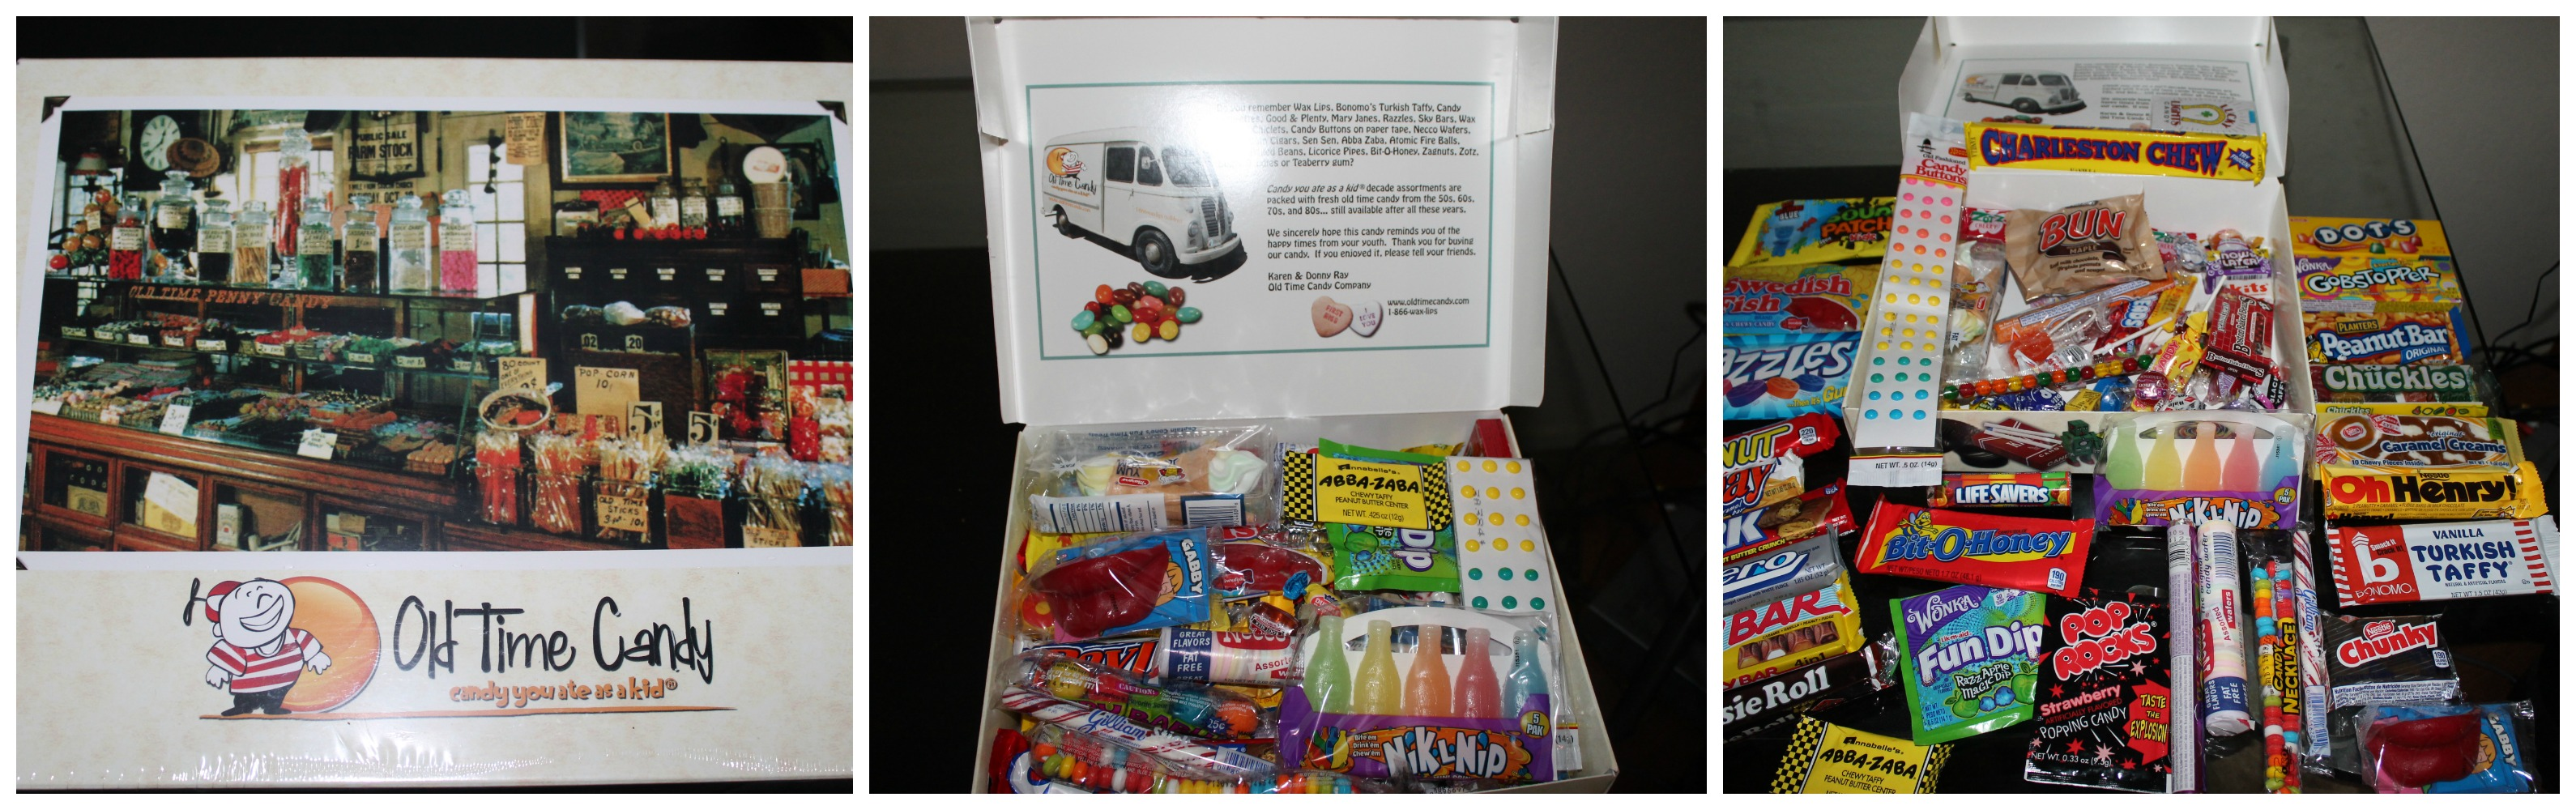 Old Time Candy, candy from the good old days that will make you smile. #Giveaway